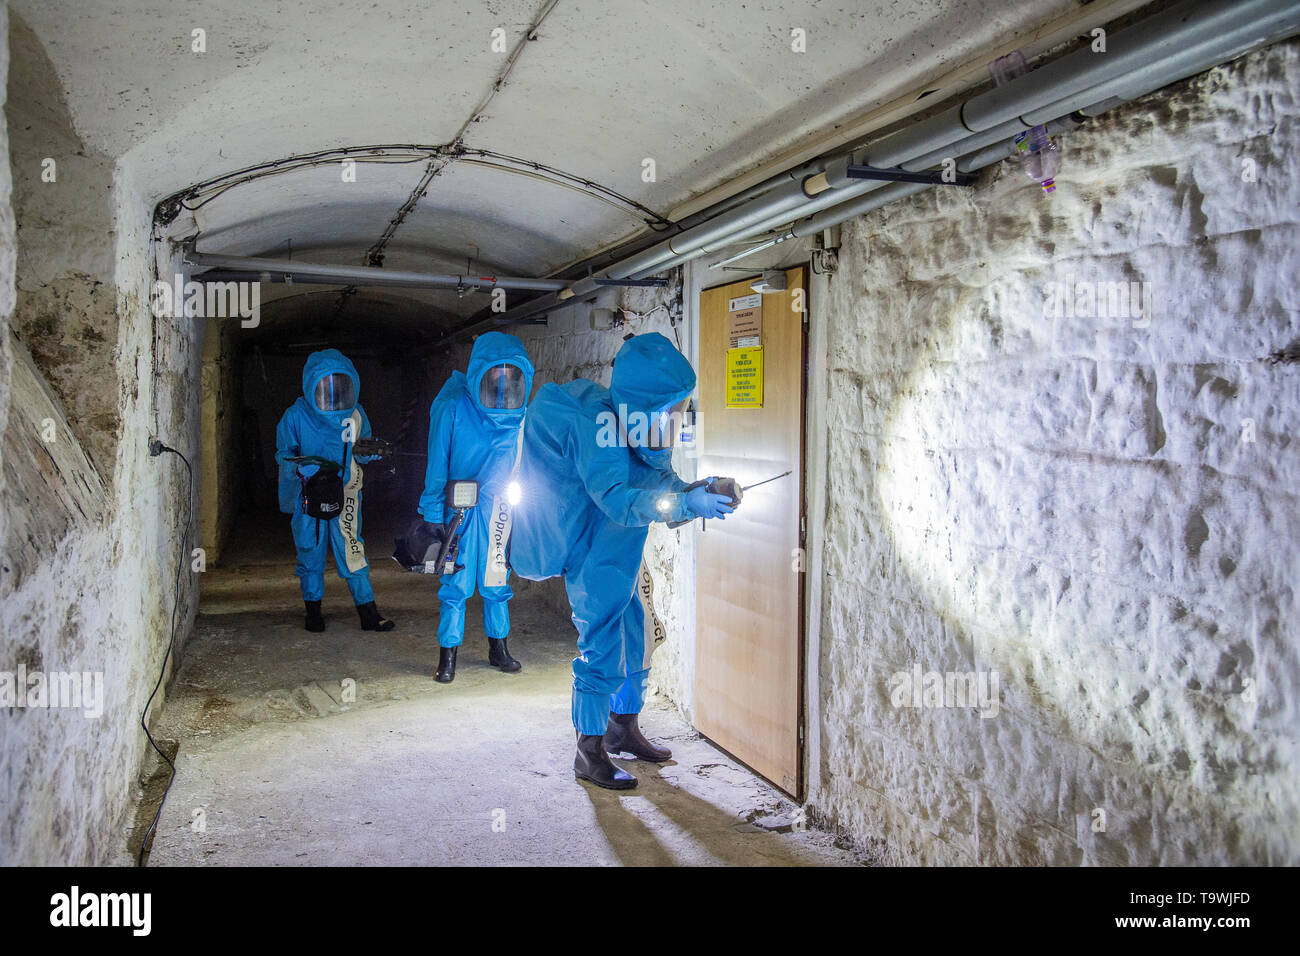 The international exercise of Allied Rapid Reaction Corps (ARRC) called Yellow Cross 2019 was held in Liberec, Czech Republic, on May 21, 2019. An example of a sampling group's activity in a simulated environment of an illegal chemical laboratory was demonstrated by military chemists. (CTK Photo/Radek Petrasek) Stock Photo